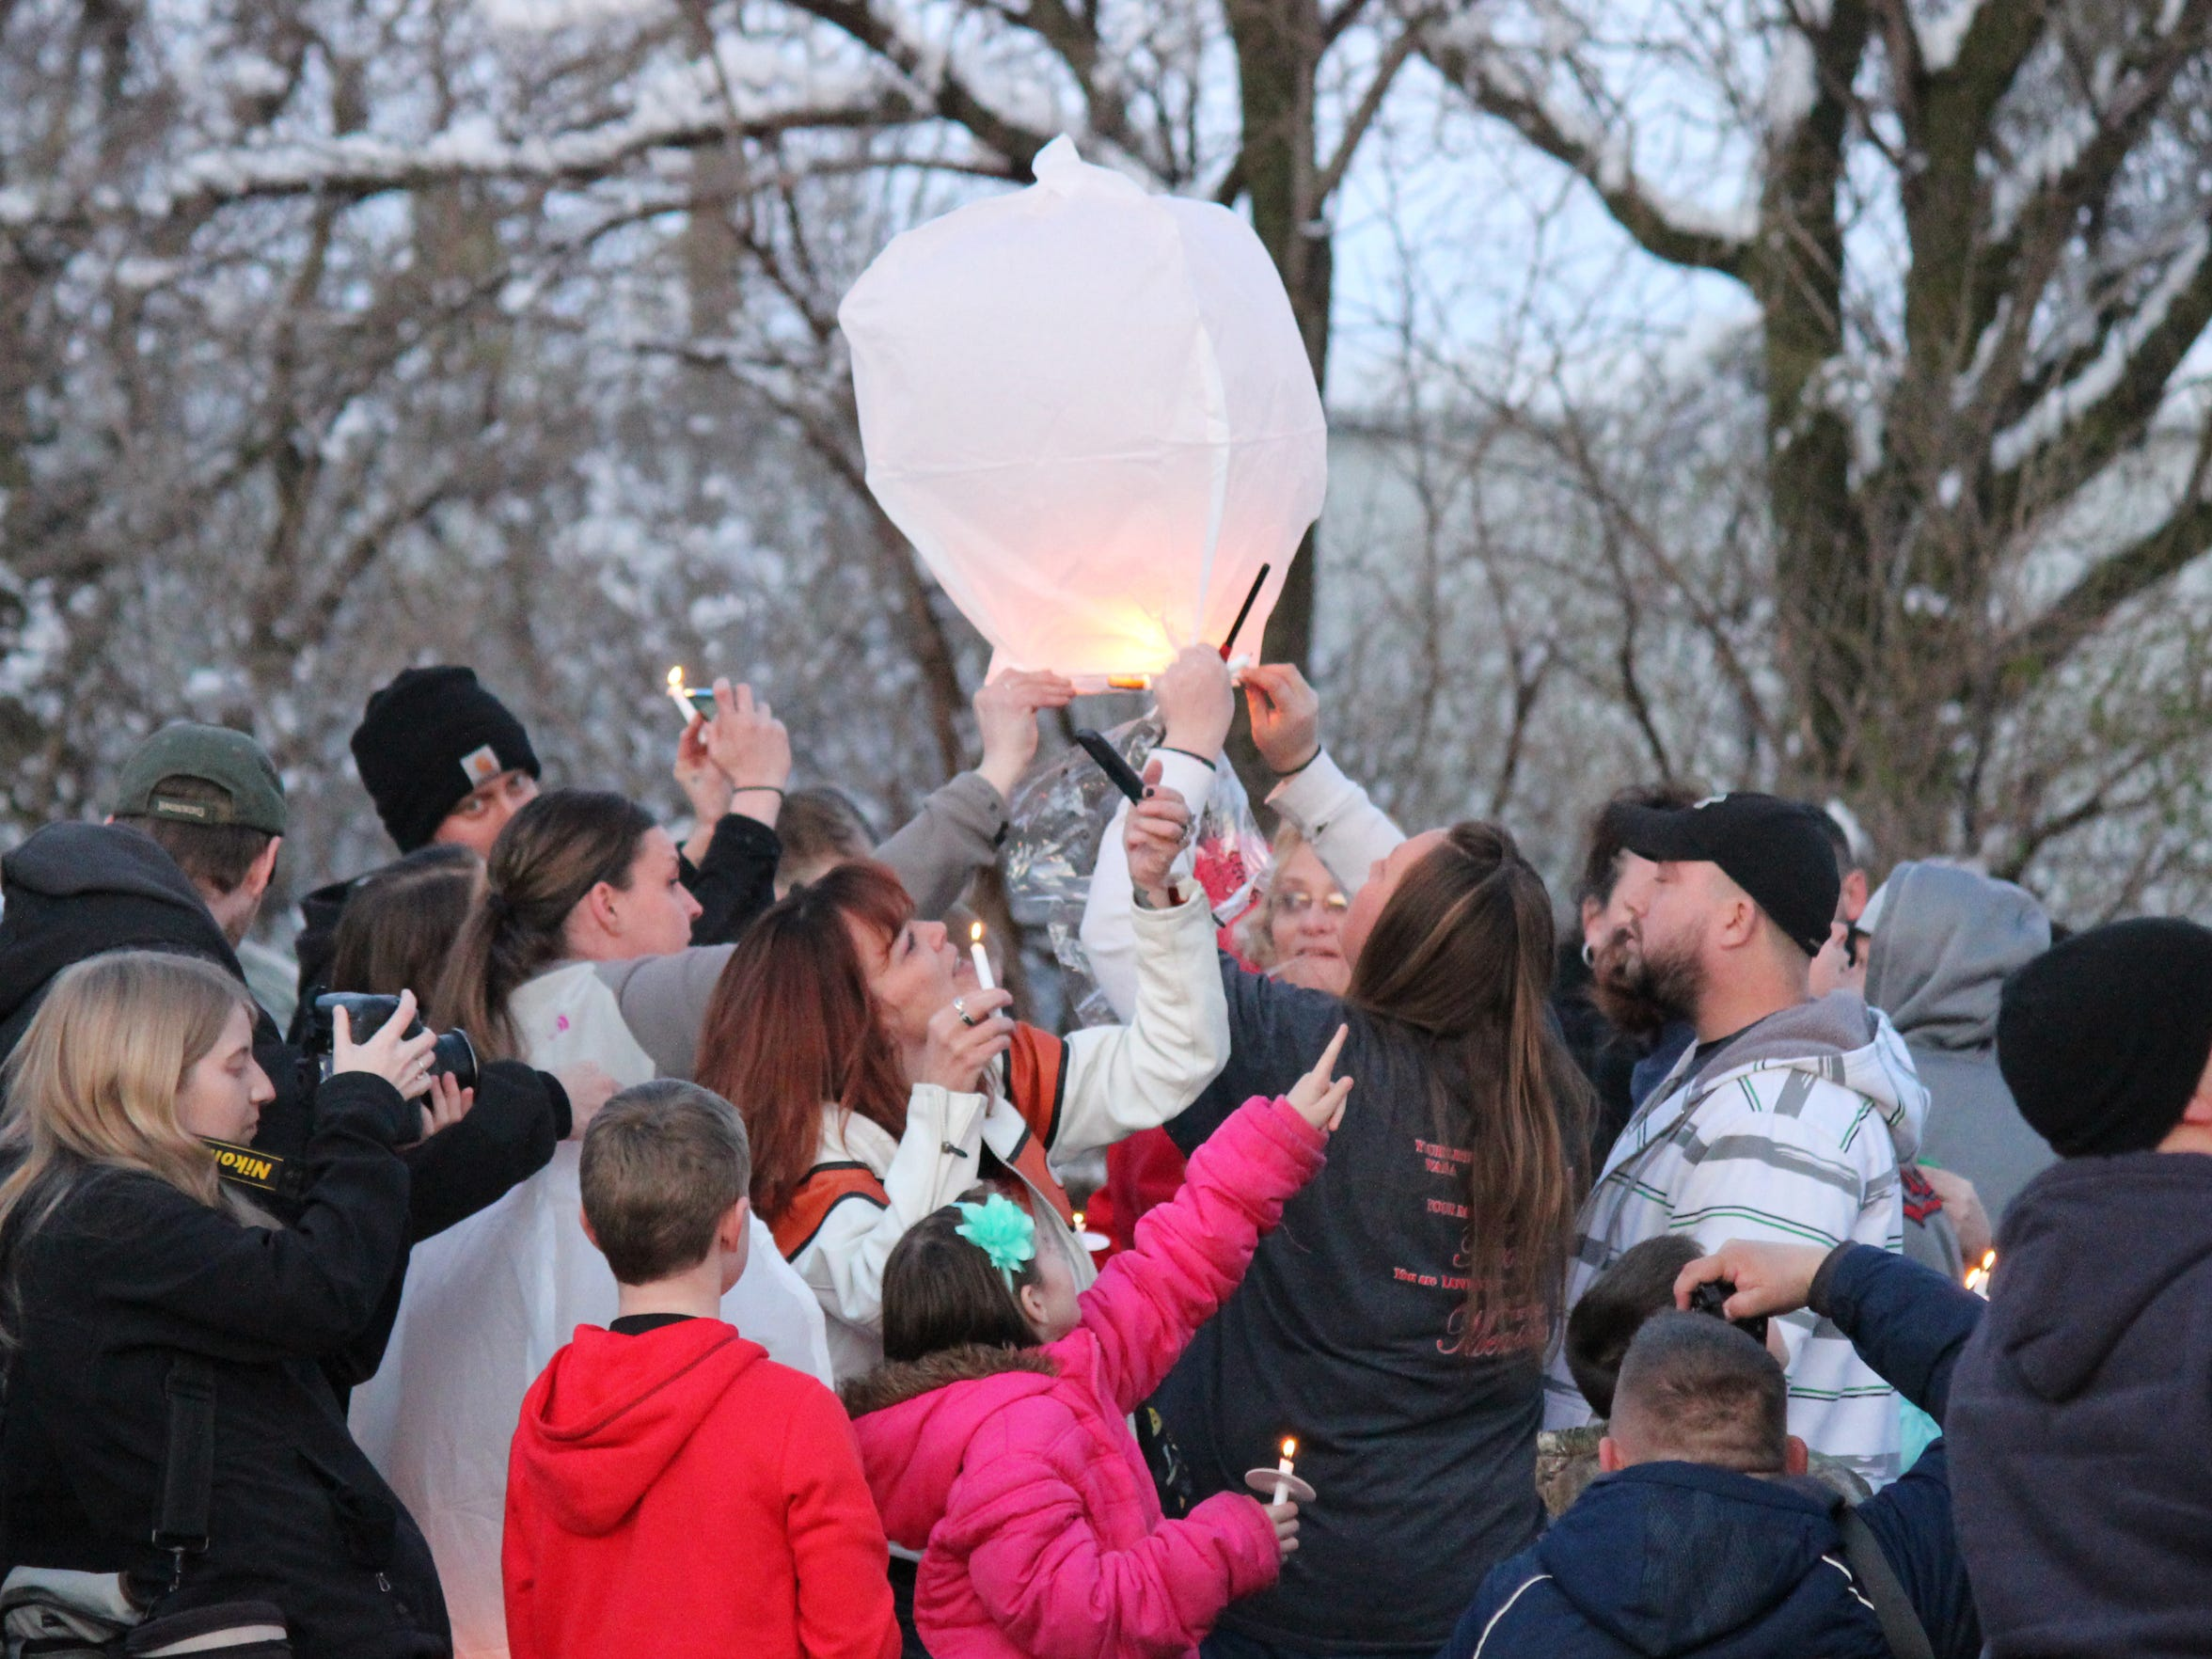 Family and friends celebrated the life of Heather Bogle with a candlelight vigil at Anjulina's in Fremont on the one-year anniversary of her death.